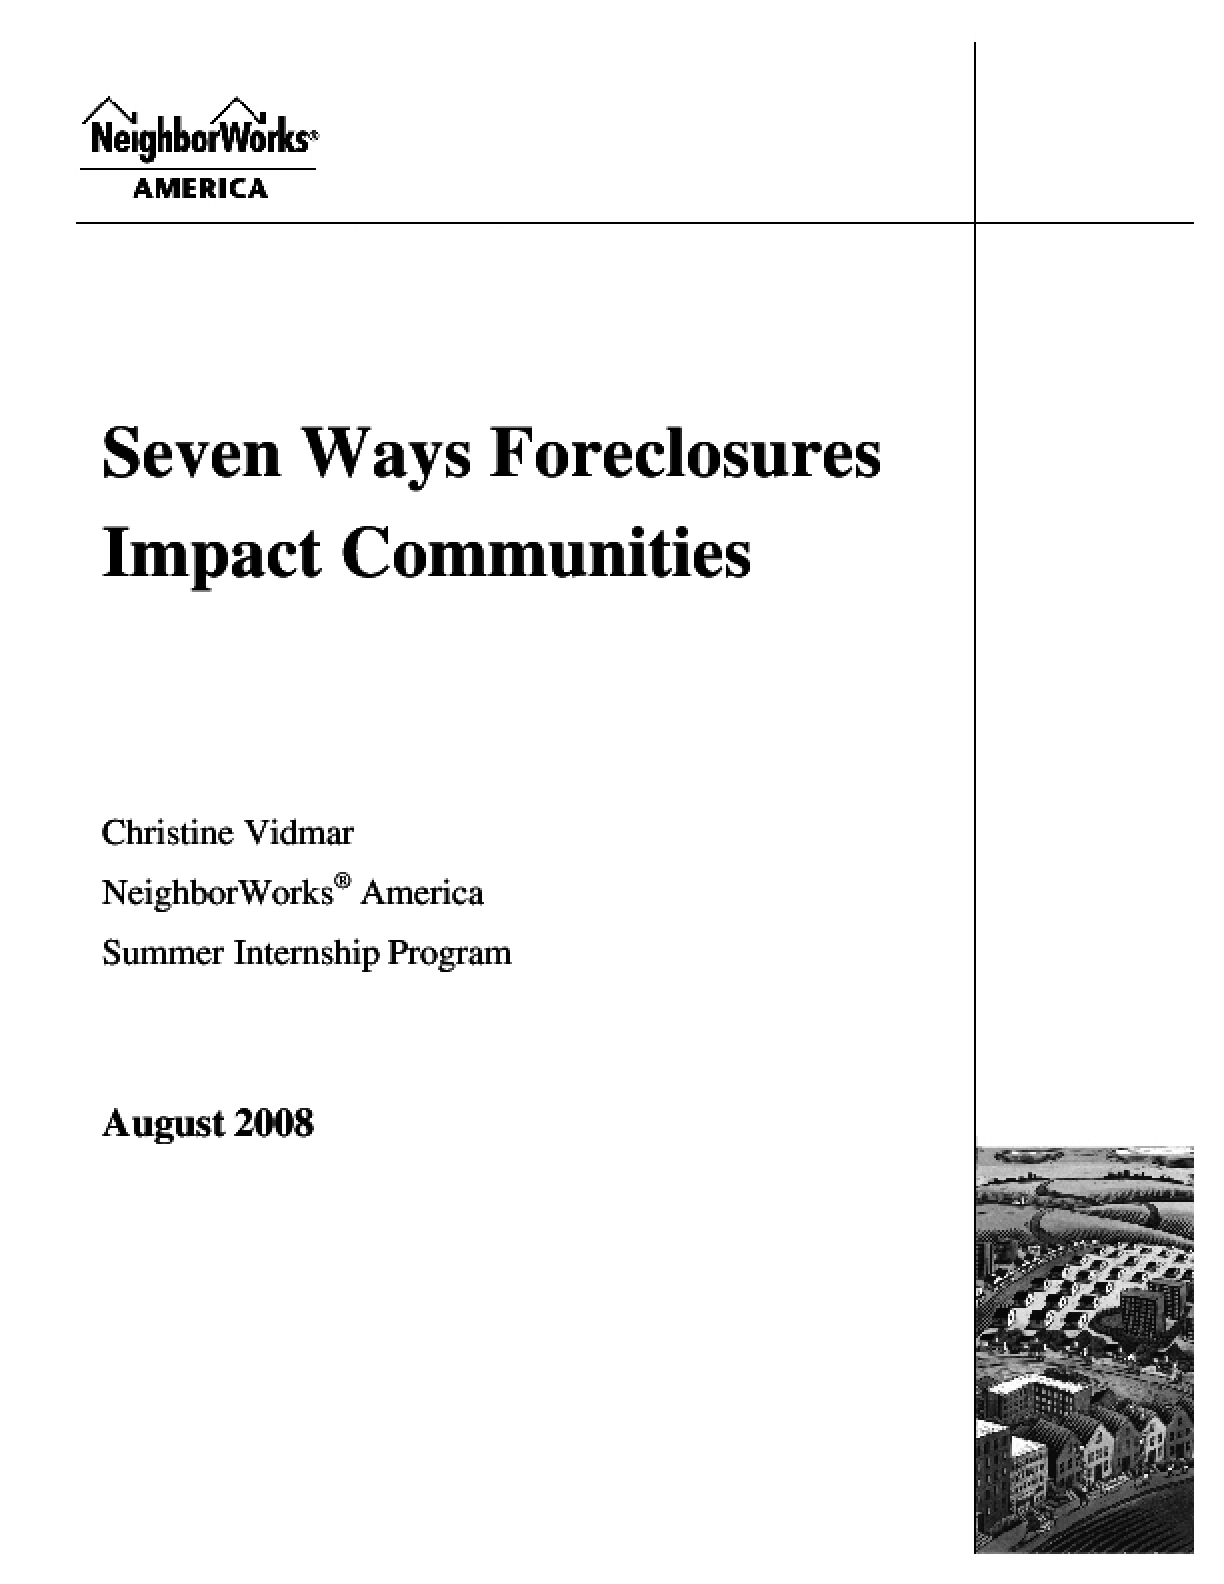 Seven Ways Foreclosures Impact Communities